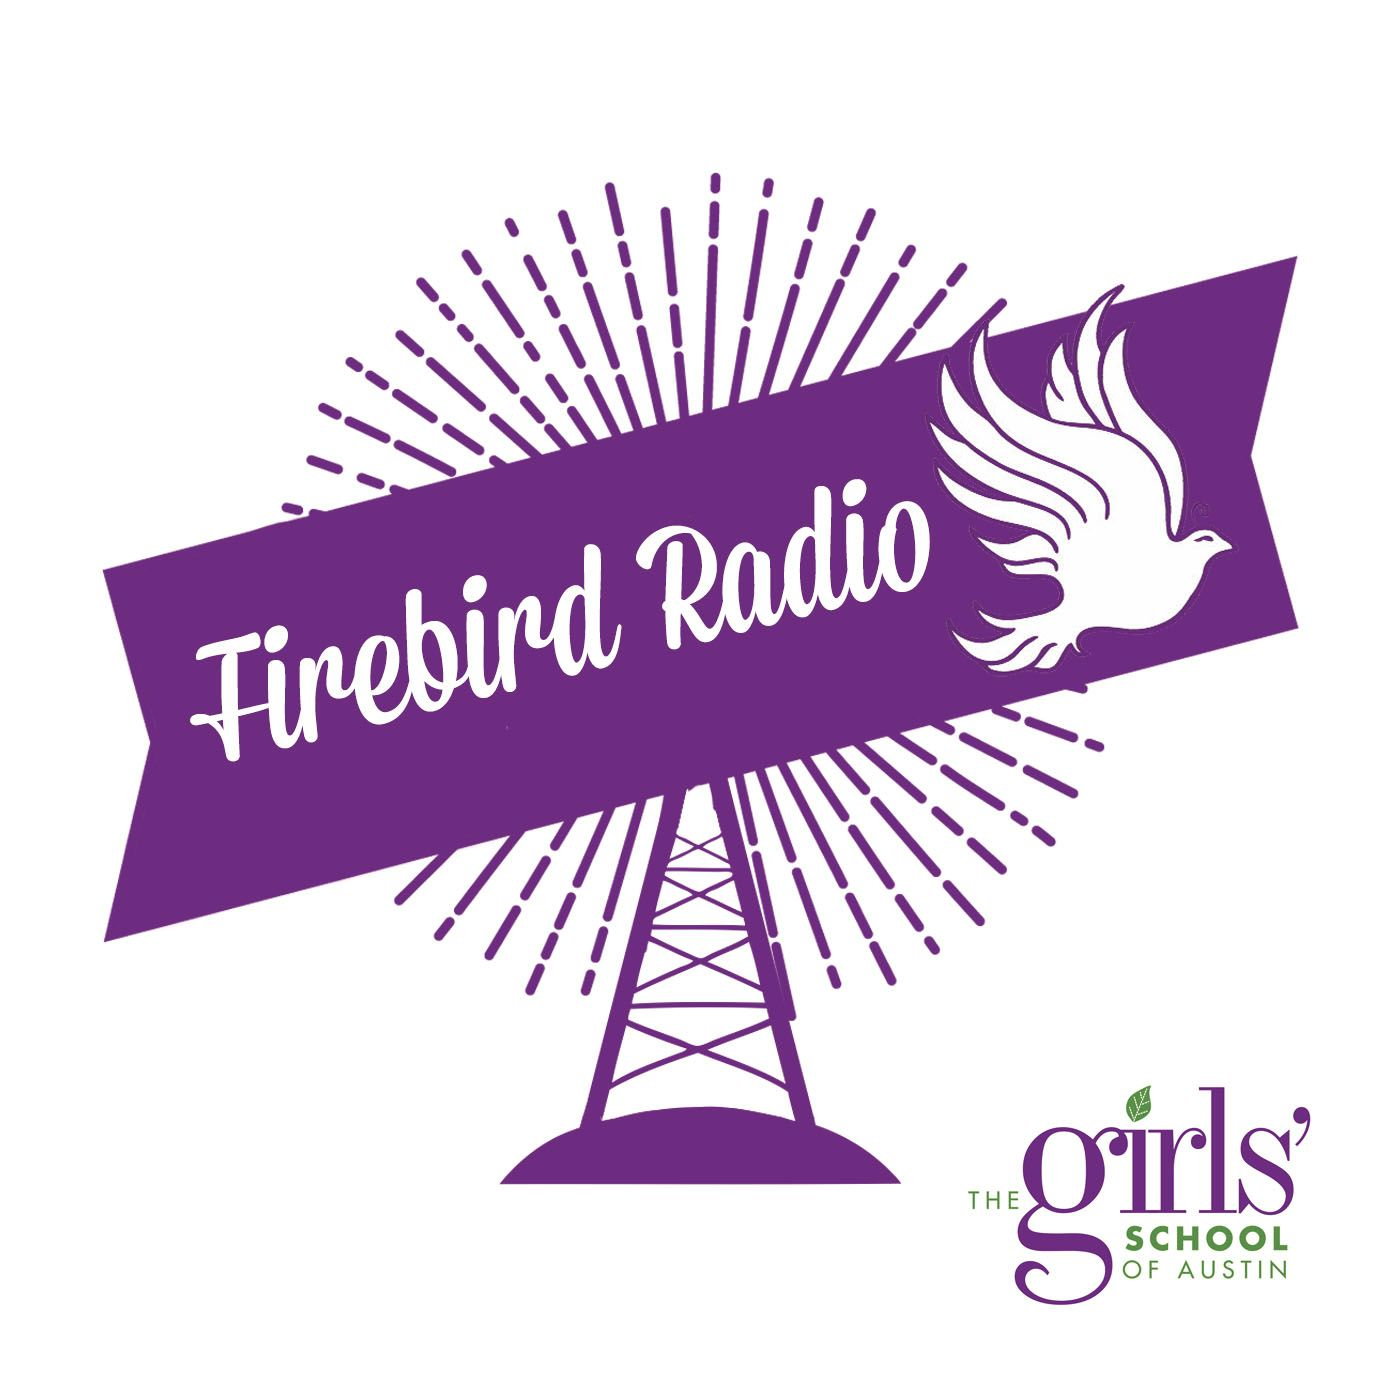 Firebird Radio